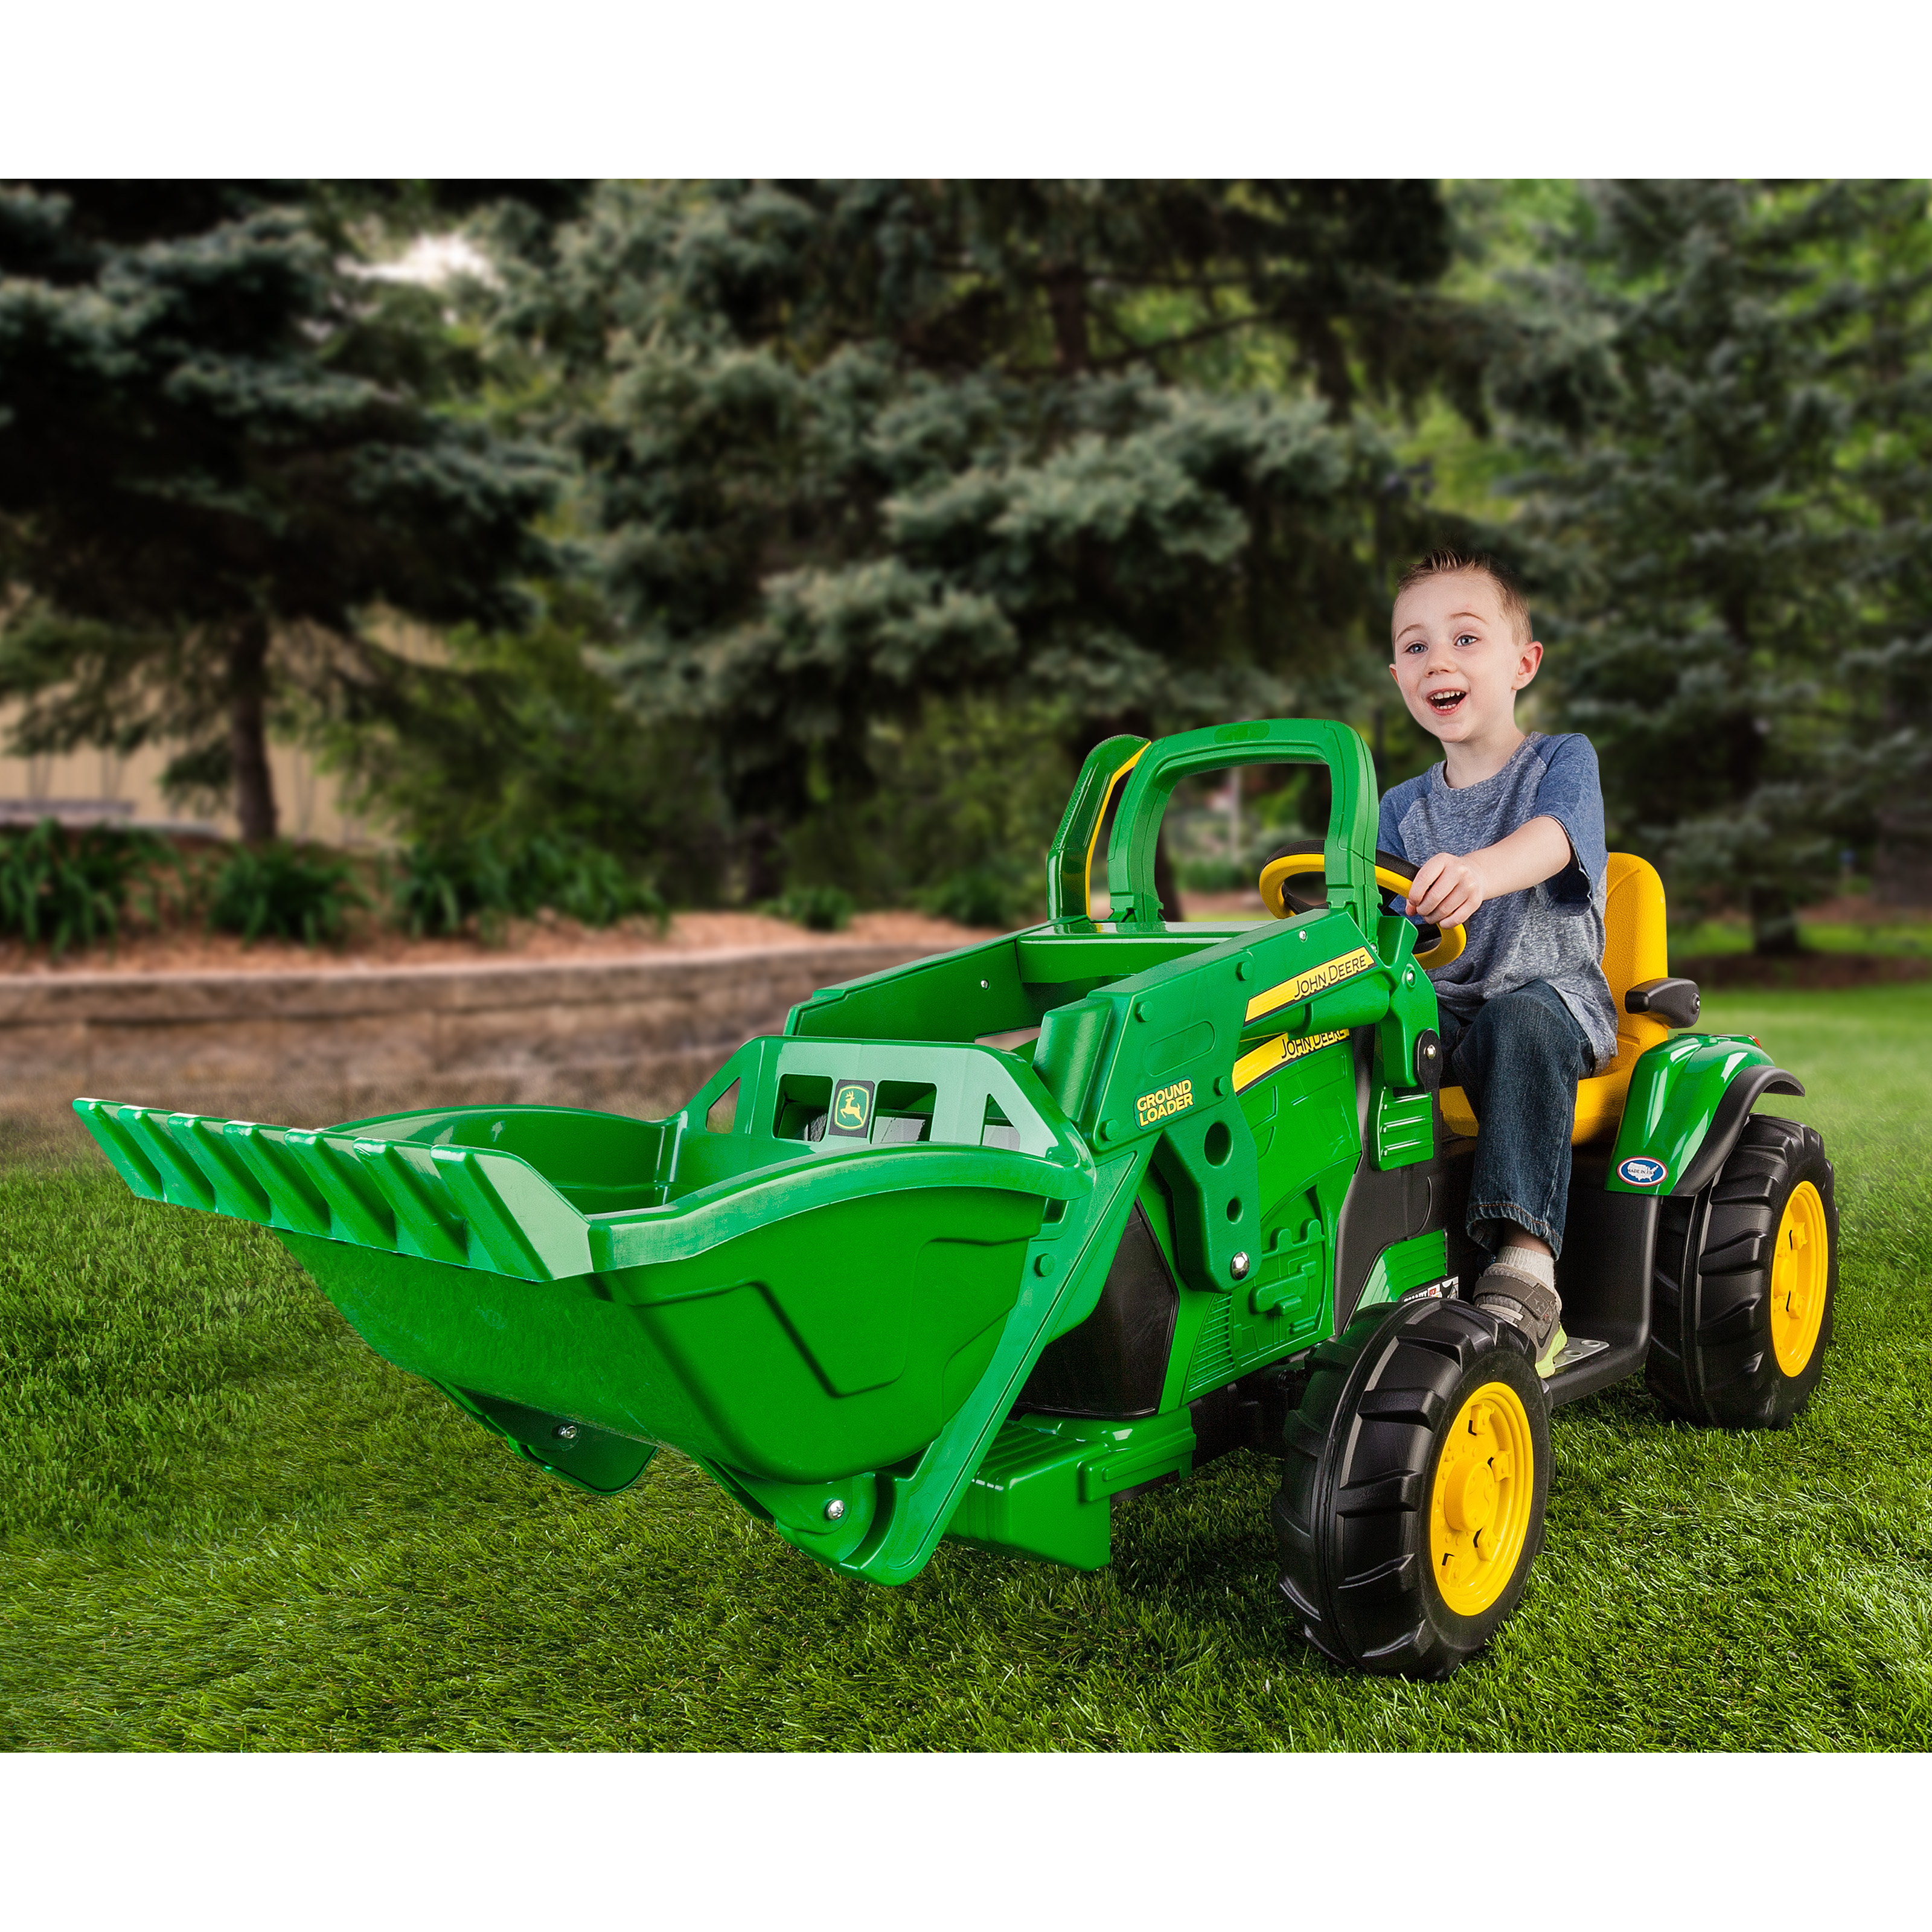 Peg perego john deere ground loader tractor battery for Motorized ride on toys for 5 year olds